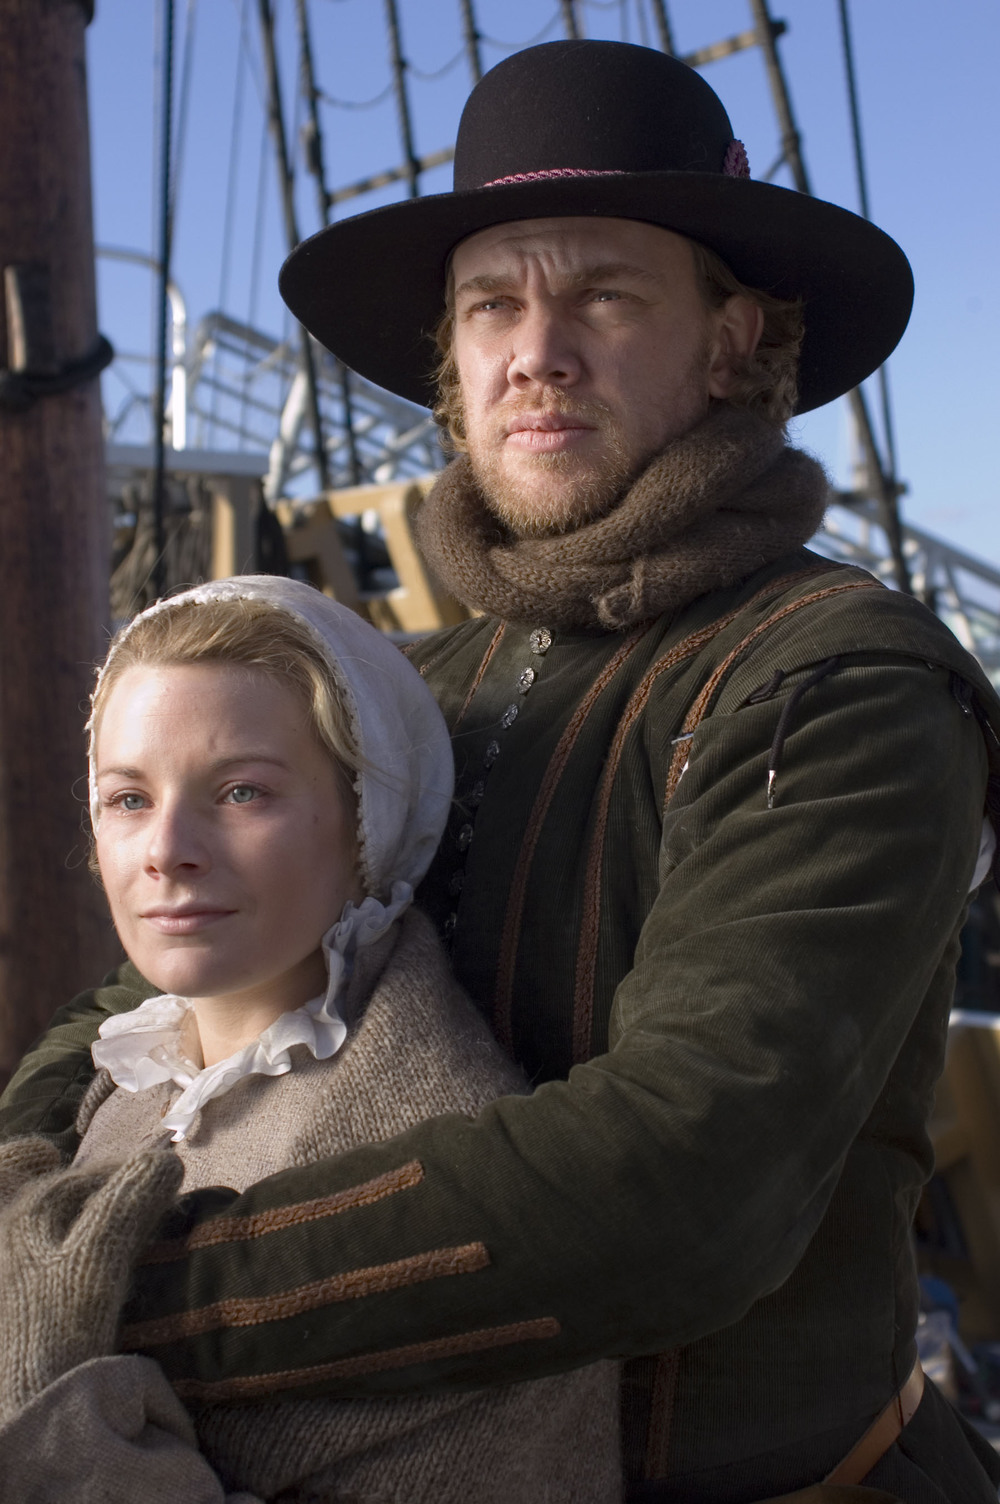 """William and Dorothy (May) Bradford, as portrayed by the History Channel's documentary """"Desperate Crossing."""" Promotional image courtesy of Lone Wolf Documentary Group."""